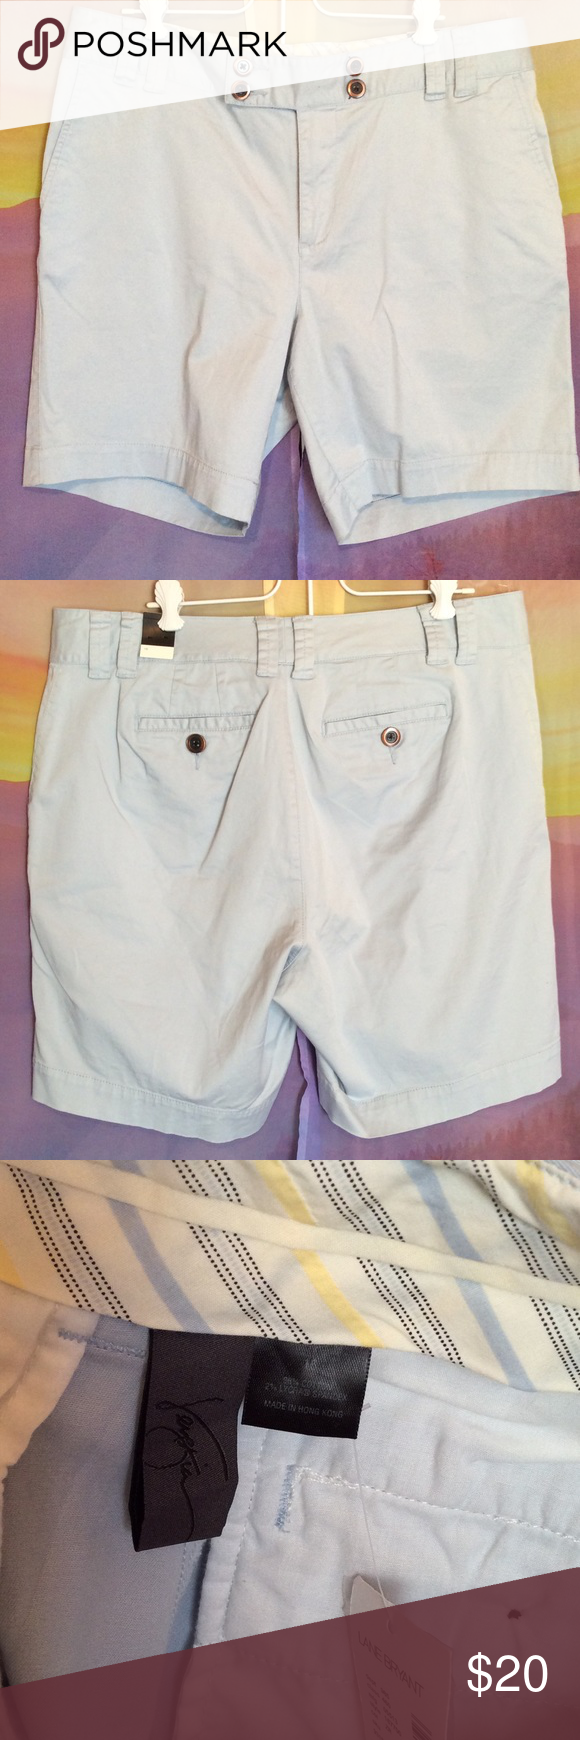 Venezia baby blue summer vacation shorts Super cute blue Bermuda shorts. Size 16. New with tags's from Lane Bryant. Light colored baby blue. Great for walking, vacations and summer! Venezia Shorts